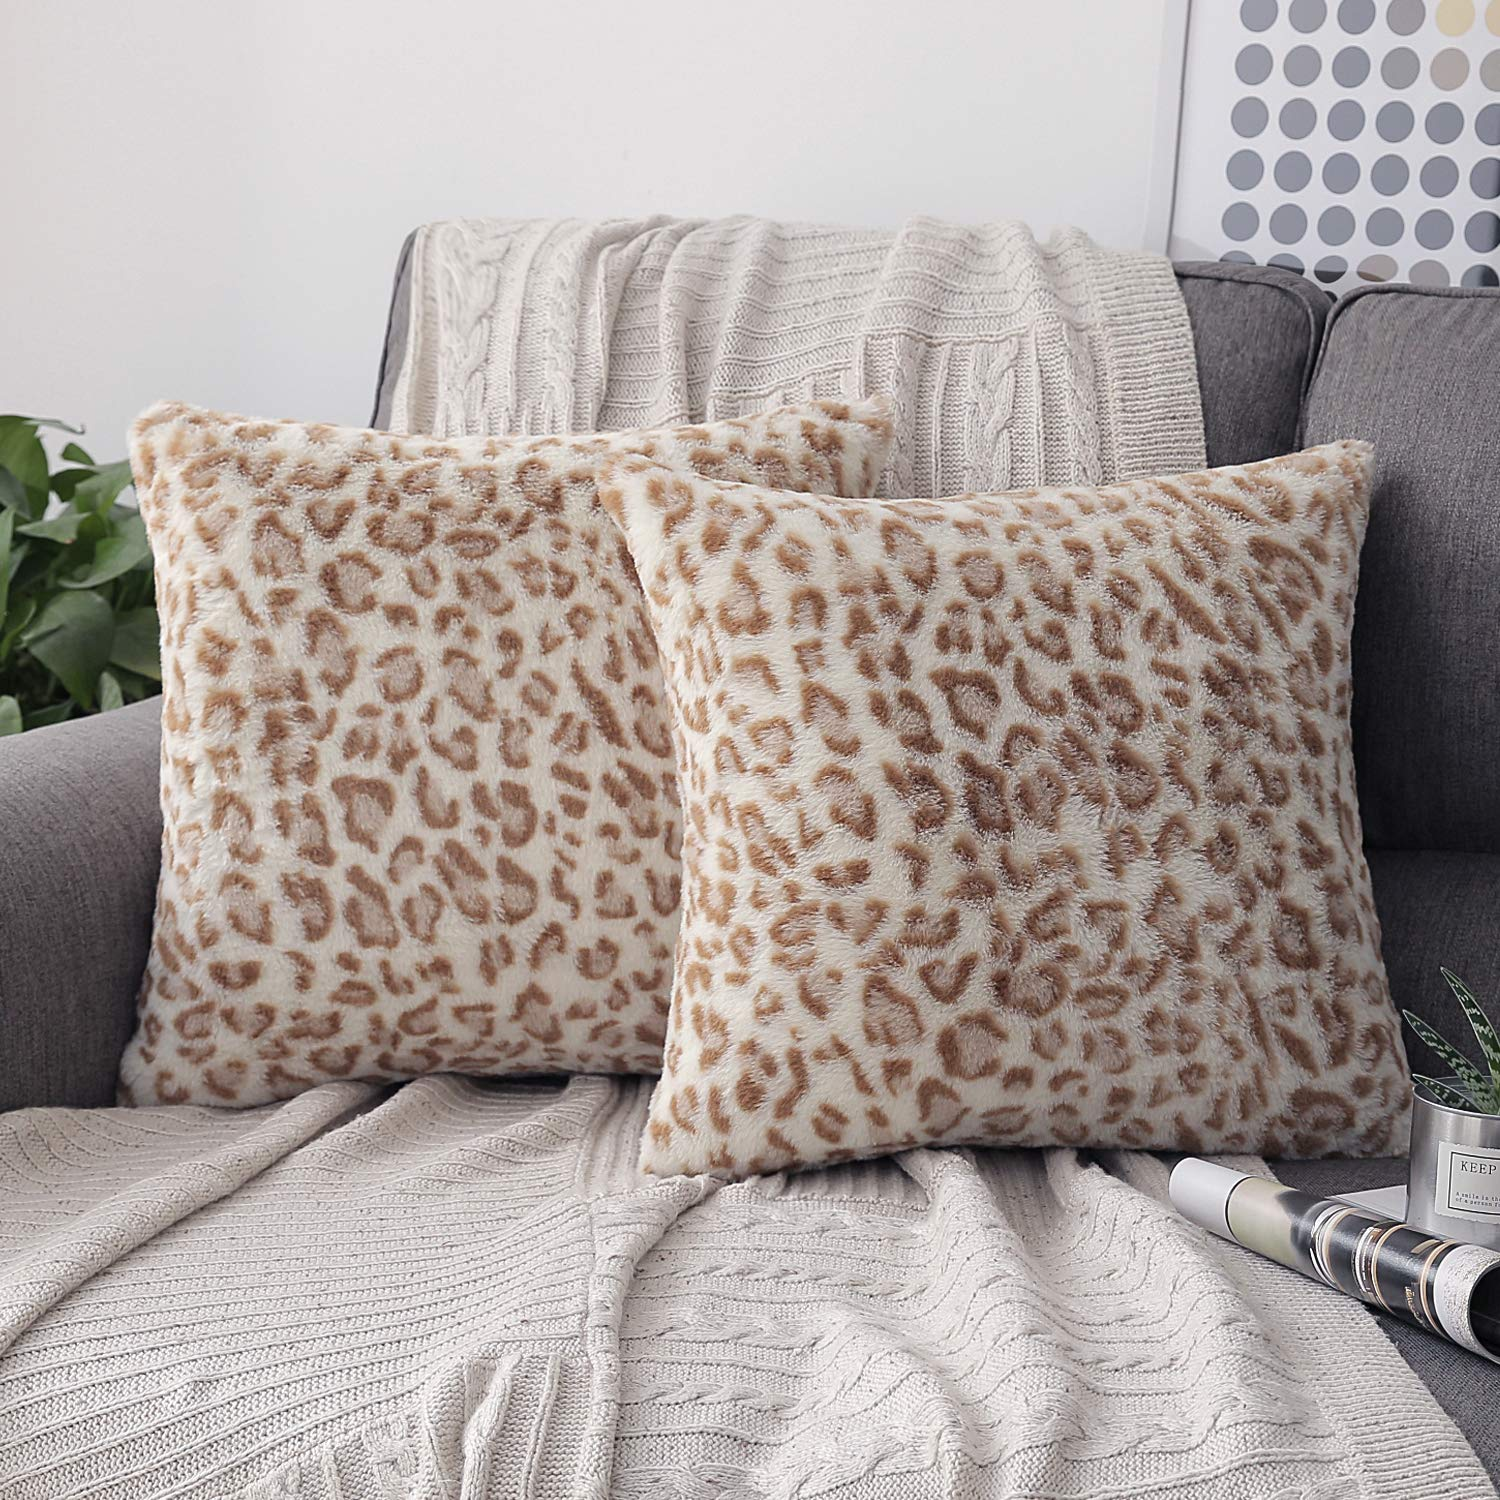 Phantoscope Set of 2 Decorative Leopard Series Soft Plush Fur Throw Pillow Case Cushion Cover Yellow 18 x 18 inches 45 x 45 cm